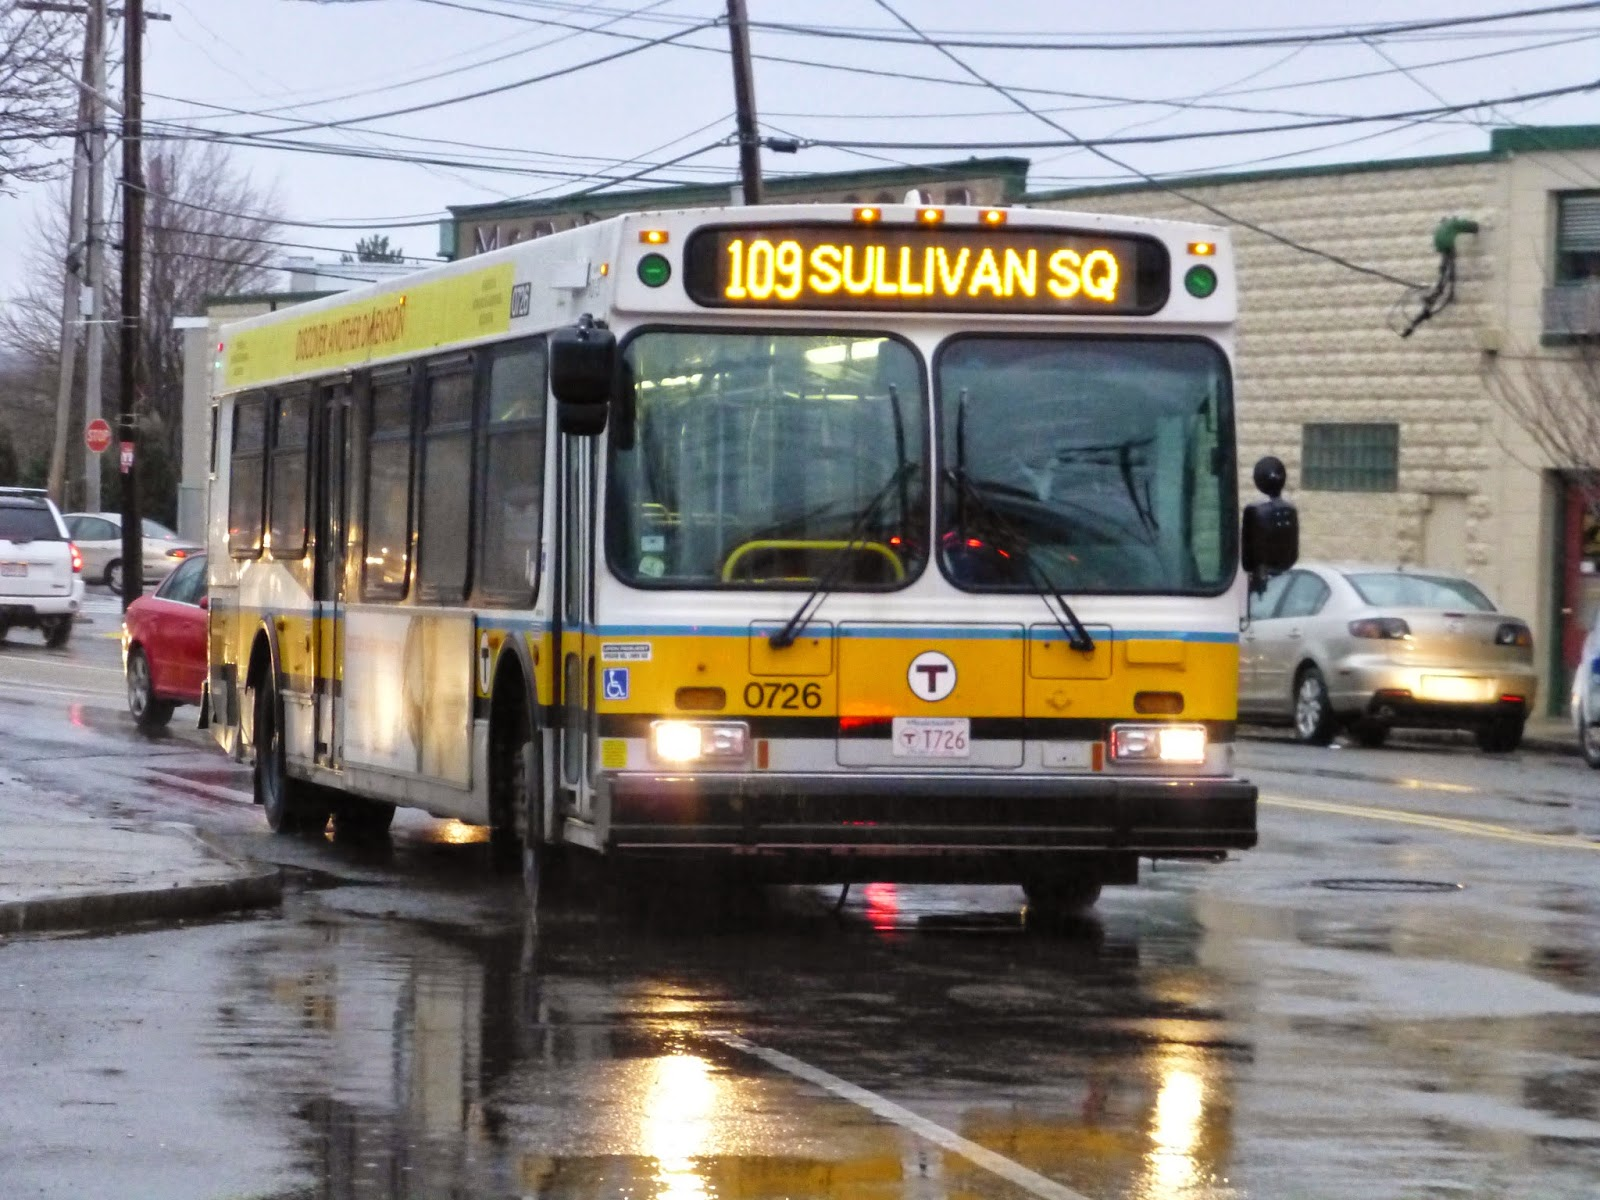 108 Bus Schedule Mbta | Examples and Forms